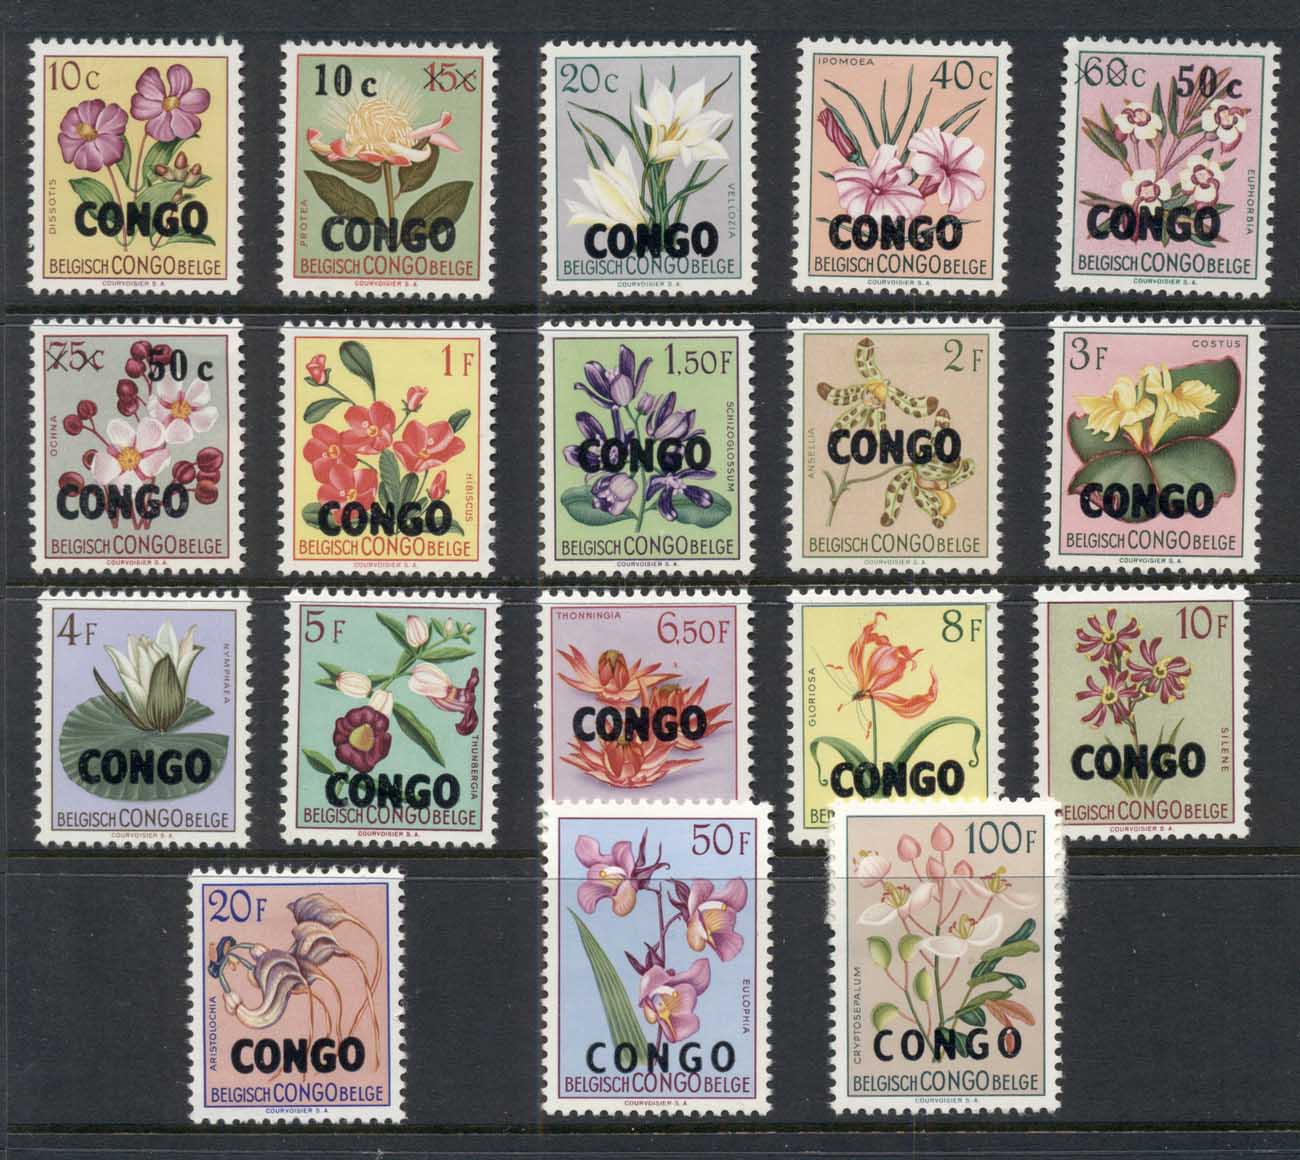 Congo DR 1960 Flowers Opts MLH